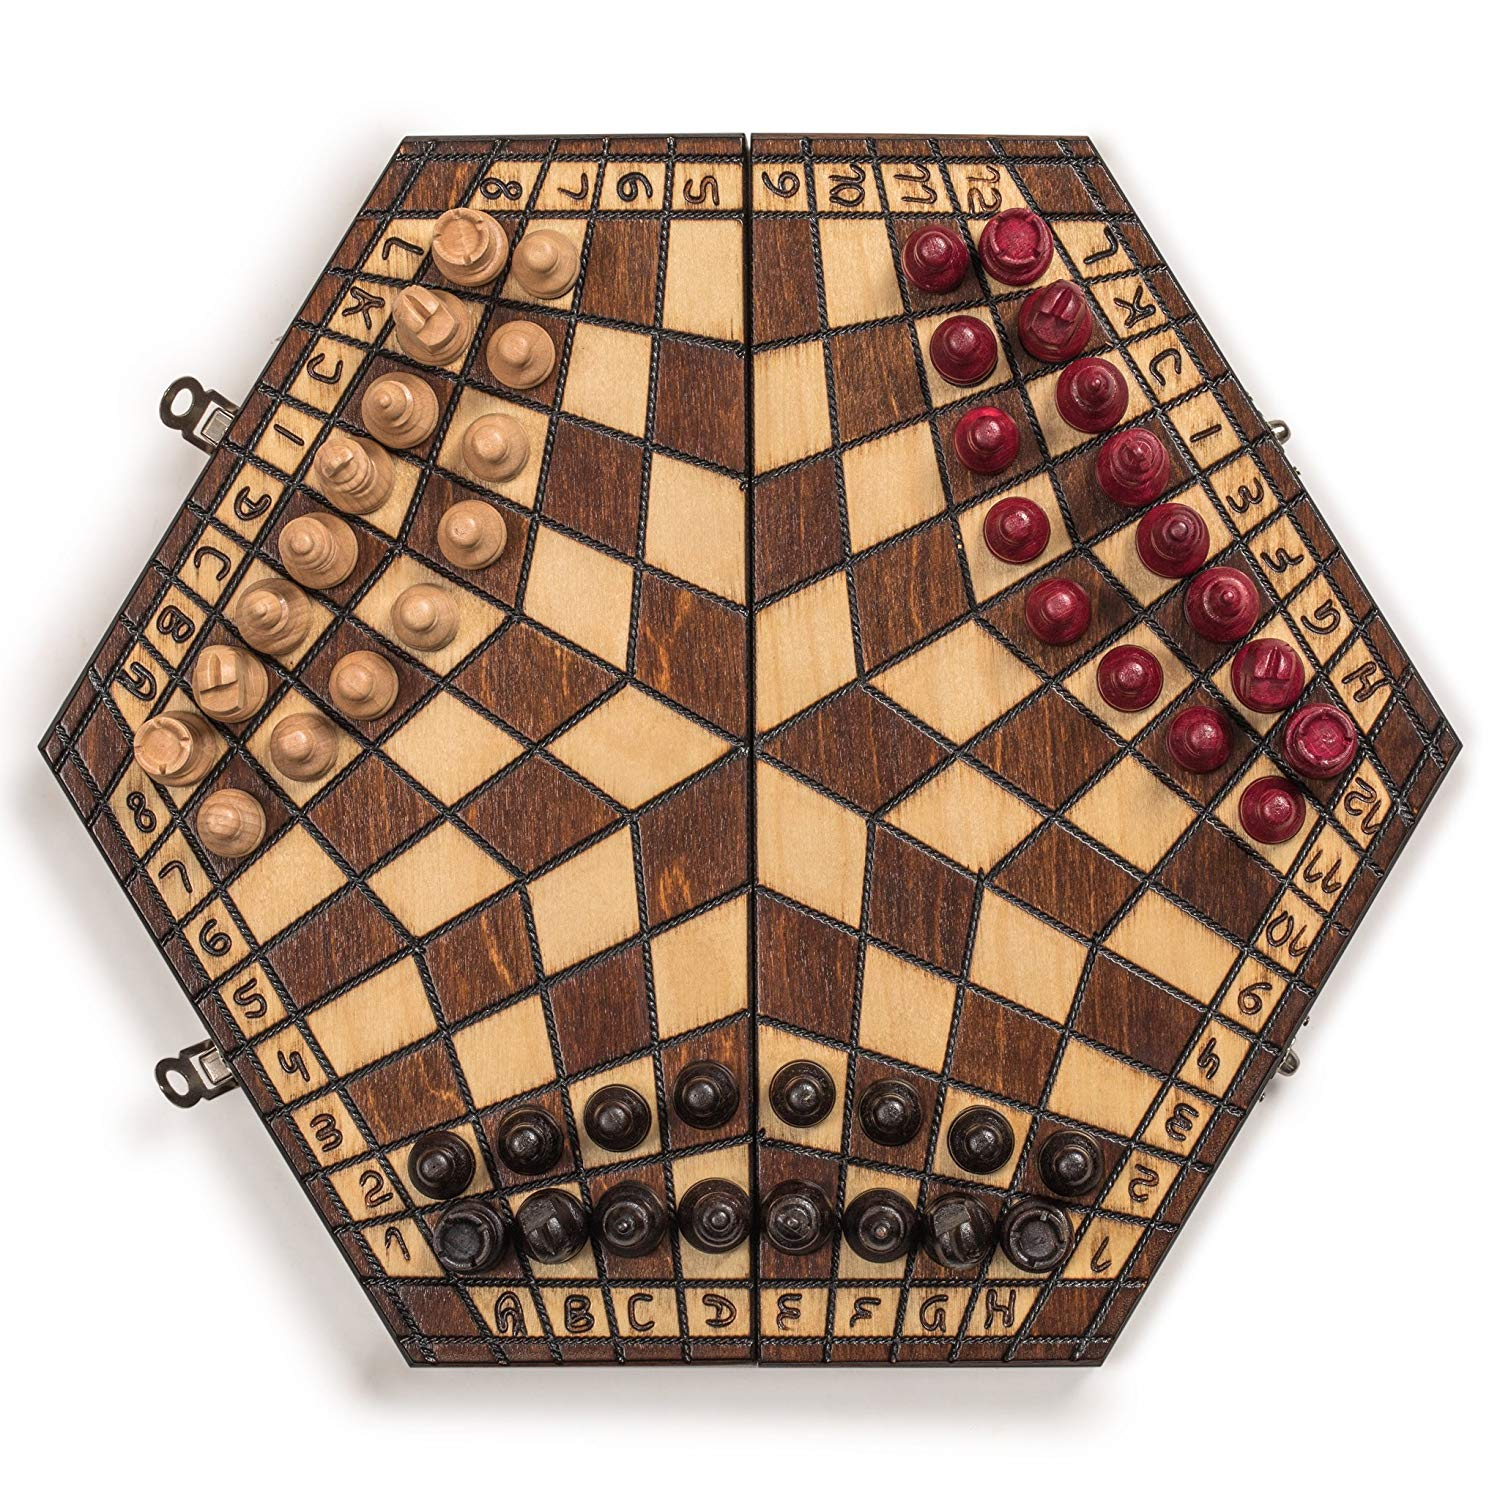 Wooden Chessboard 3 players